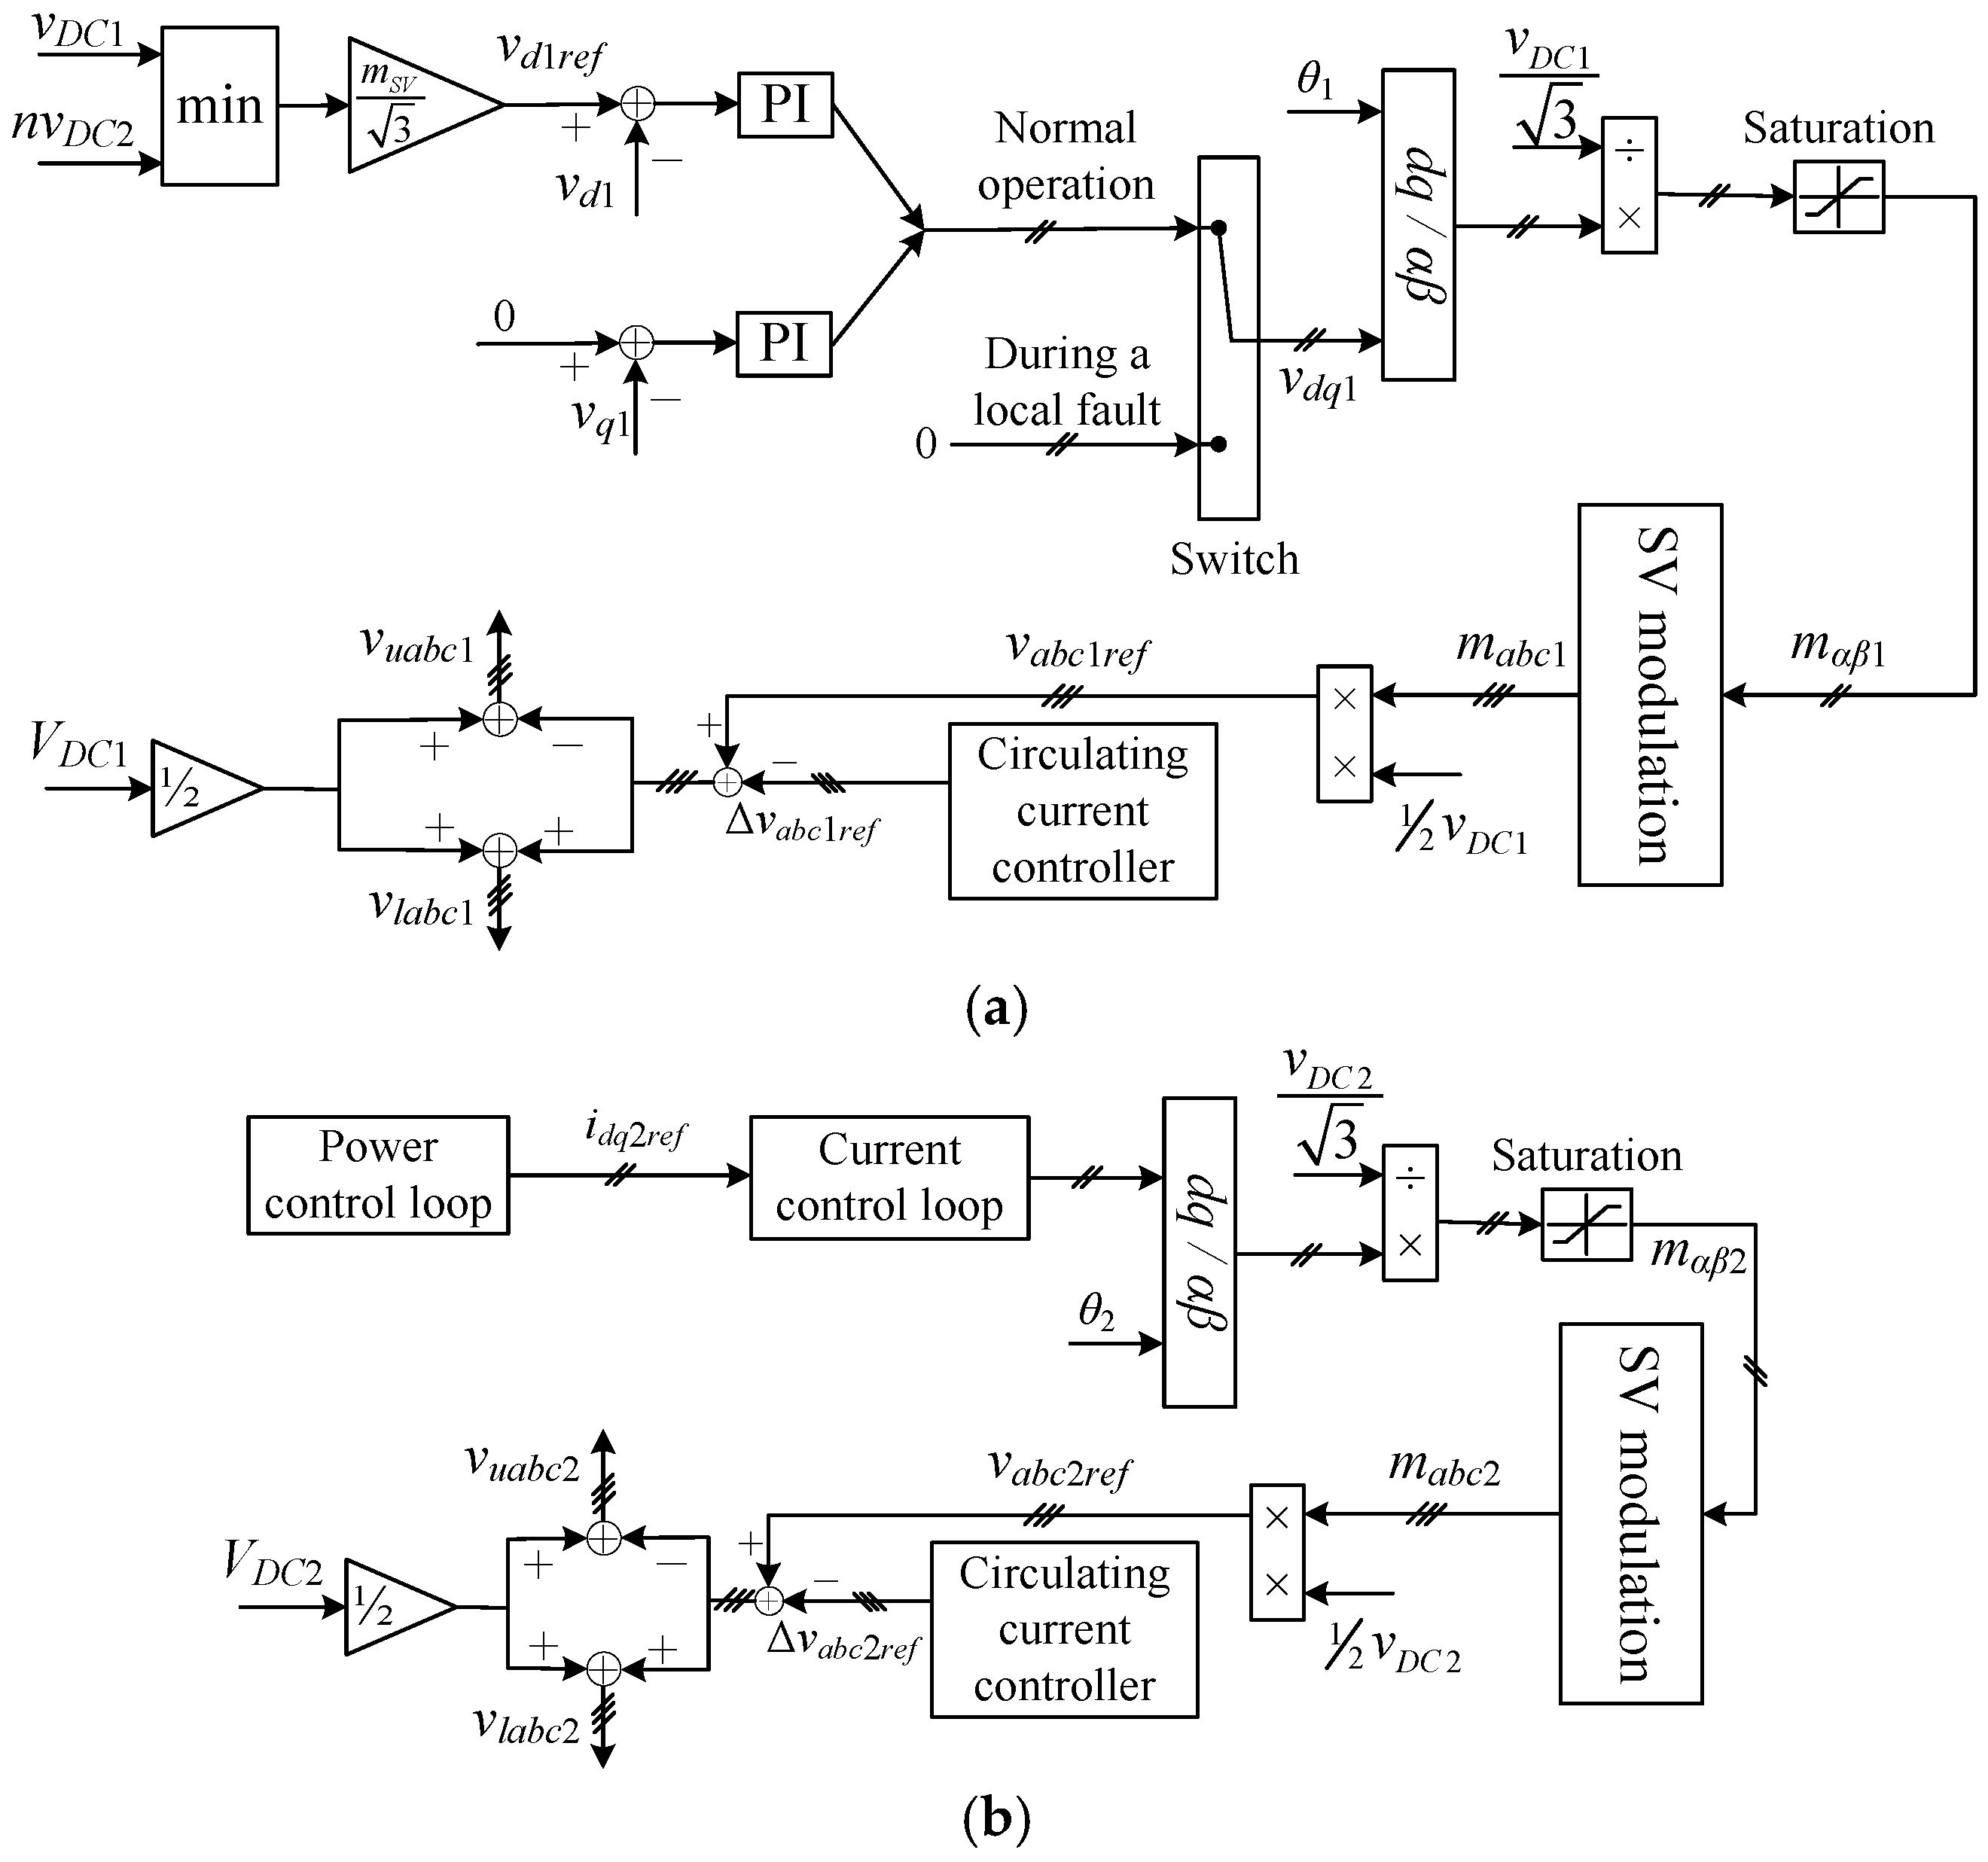 Energies Free Full Text Ac Voltage Control Of Dc Converters Controlled Capacitors And Inductors 09 01064 G002